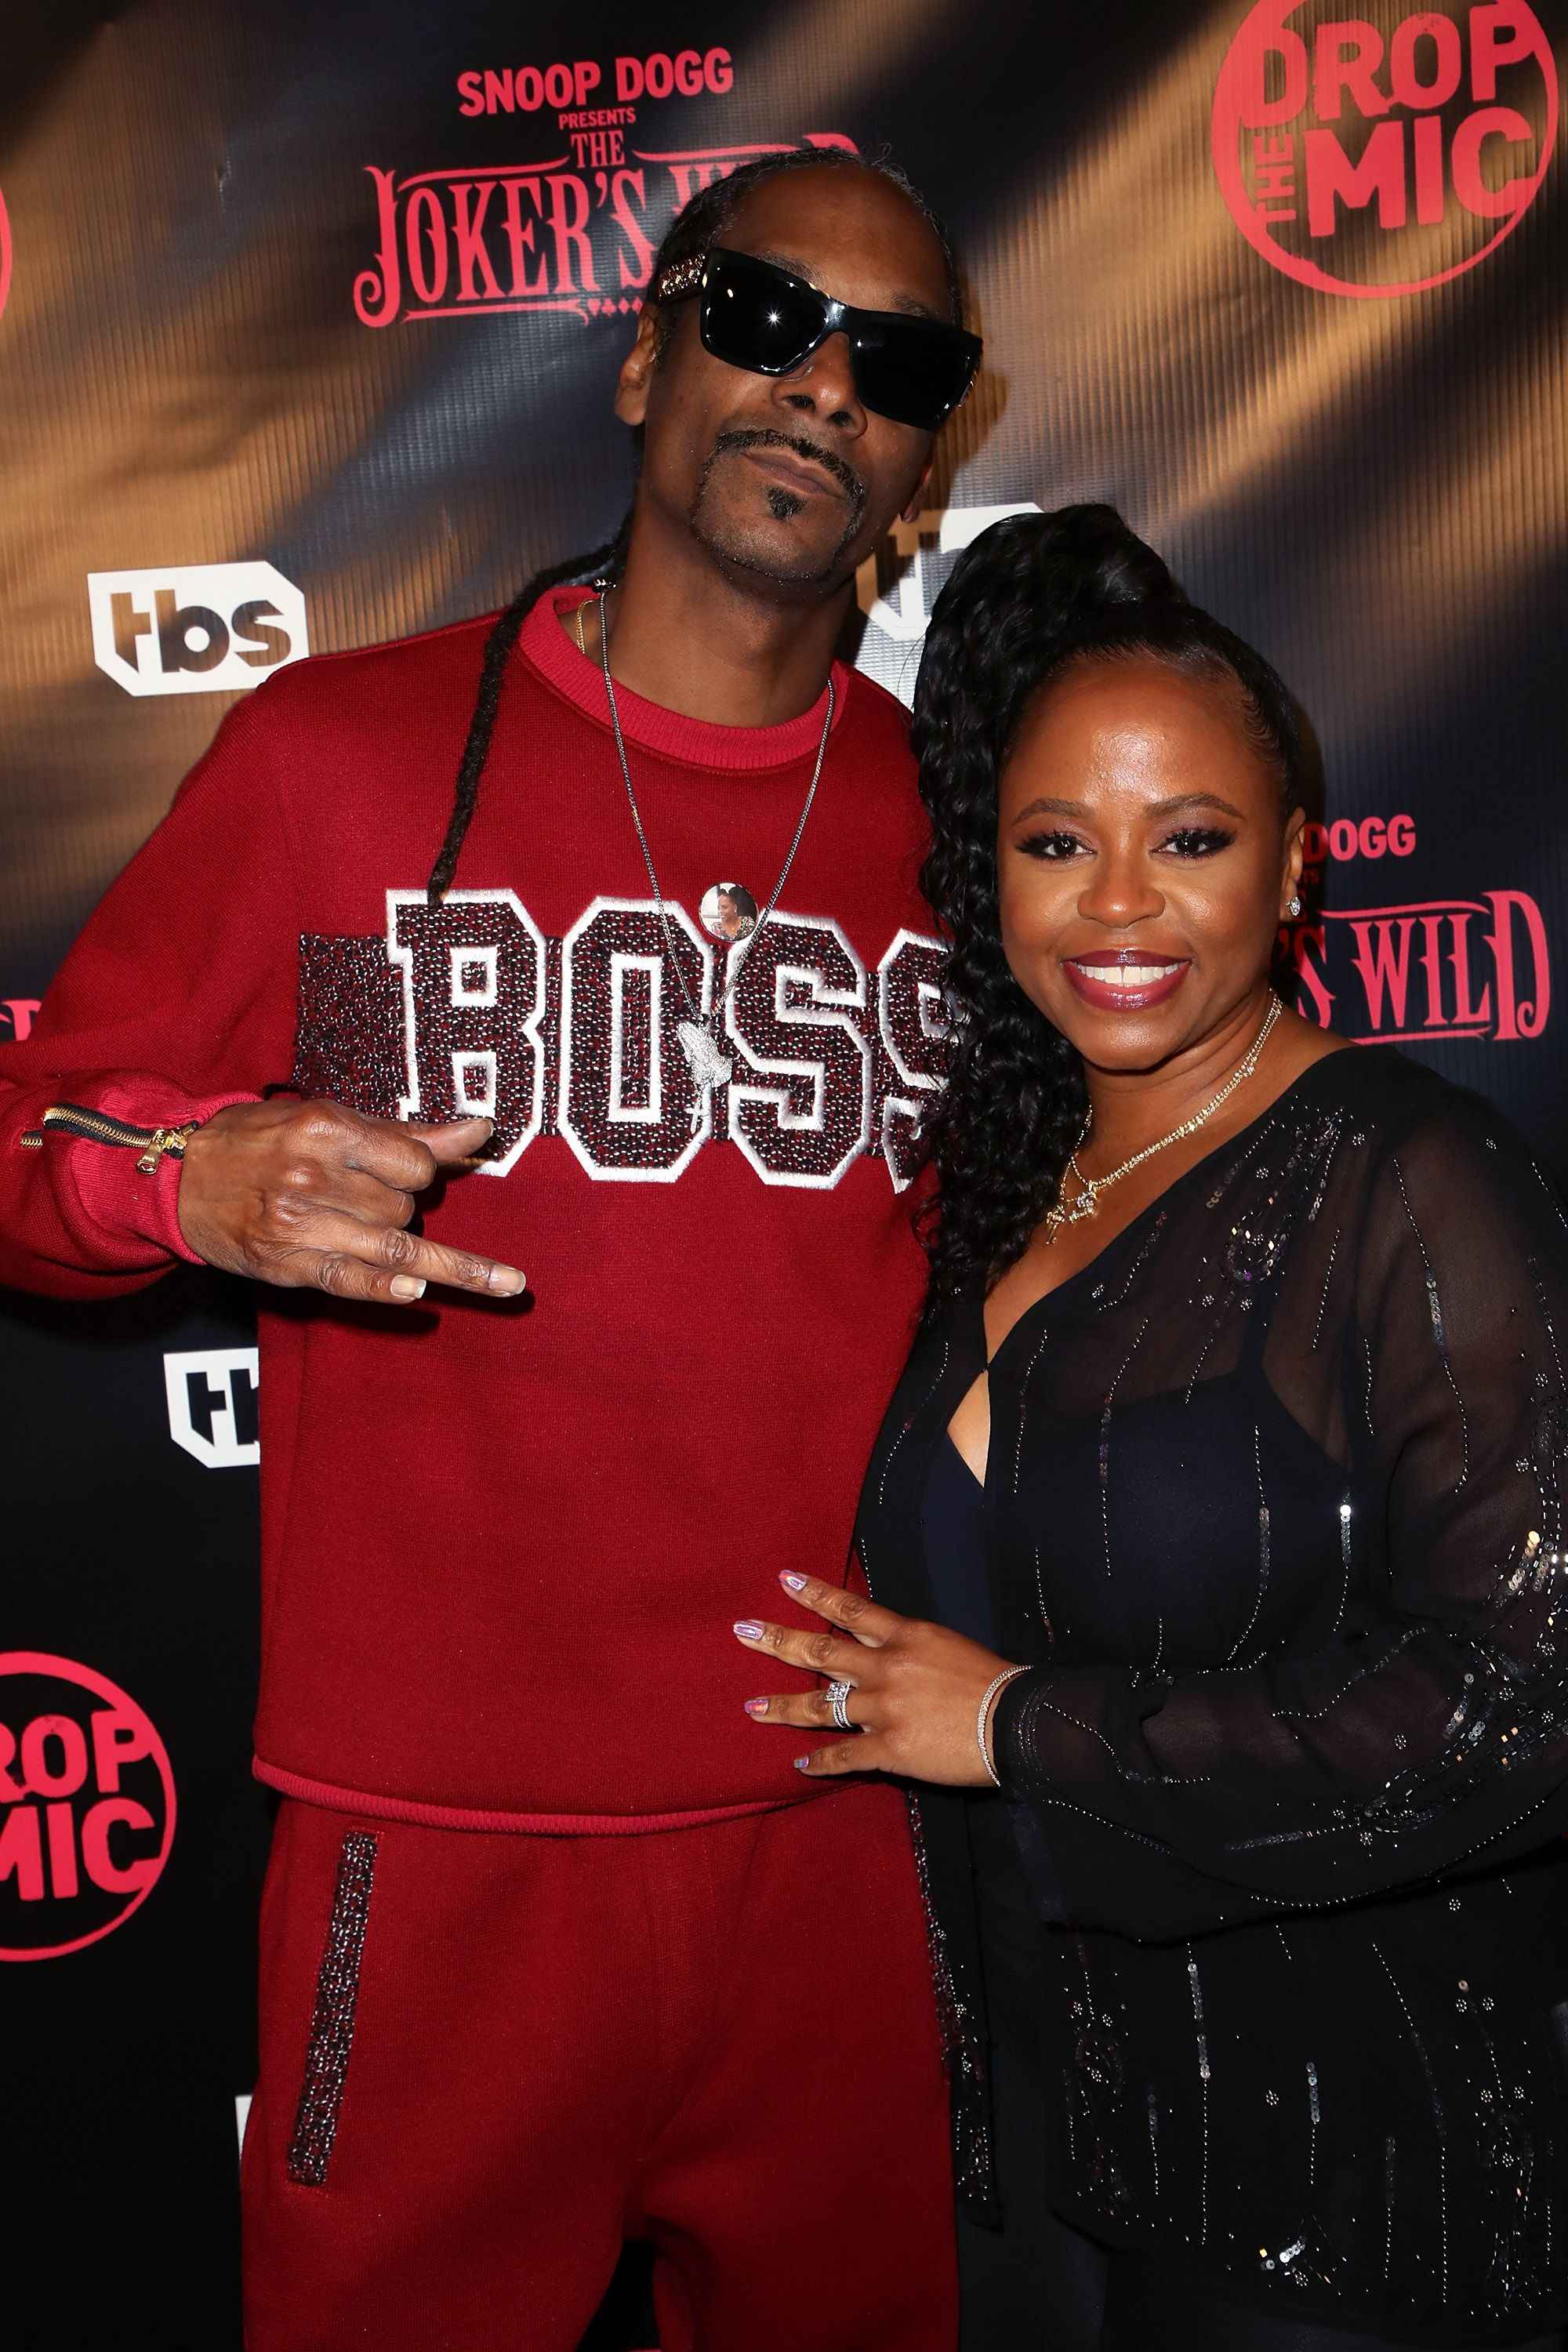 """Snoop Dogg and wife Shante Broadus at the premiere for TBS's """"Drop The Mic"""" and """"The Joker's Wild"""" at The Highlight Room on October 11, 2017.   Photo: Getty Images"""